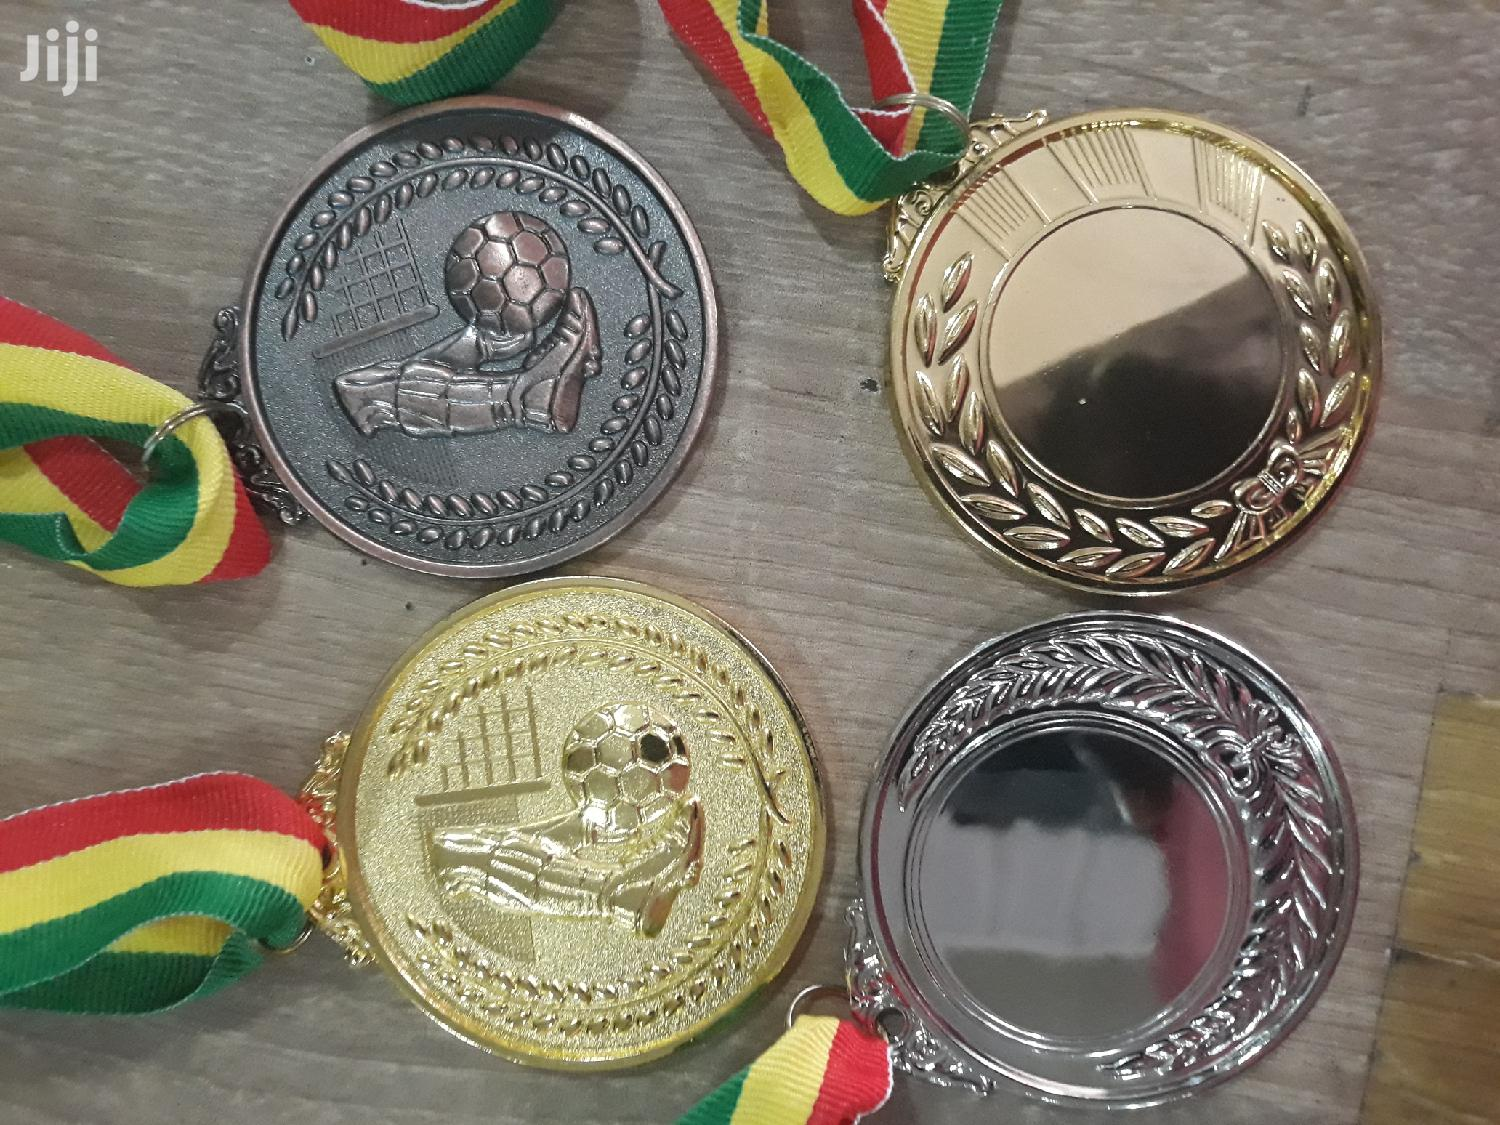 Original Medals At Cool Price | Arts & Crafts for sale in Dansoman, Greater Accra, Ghana